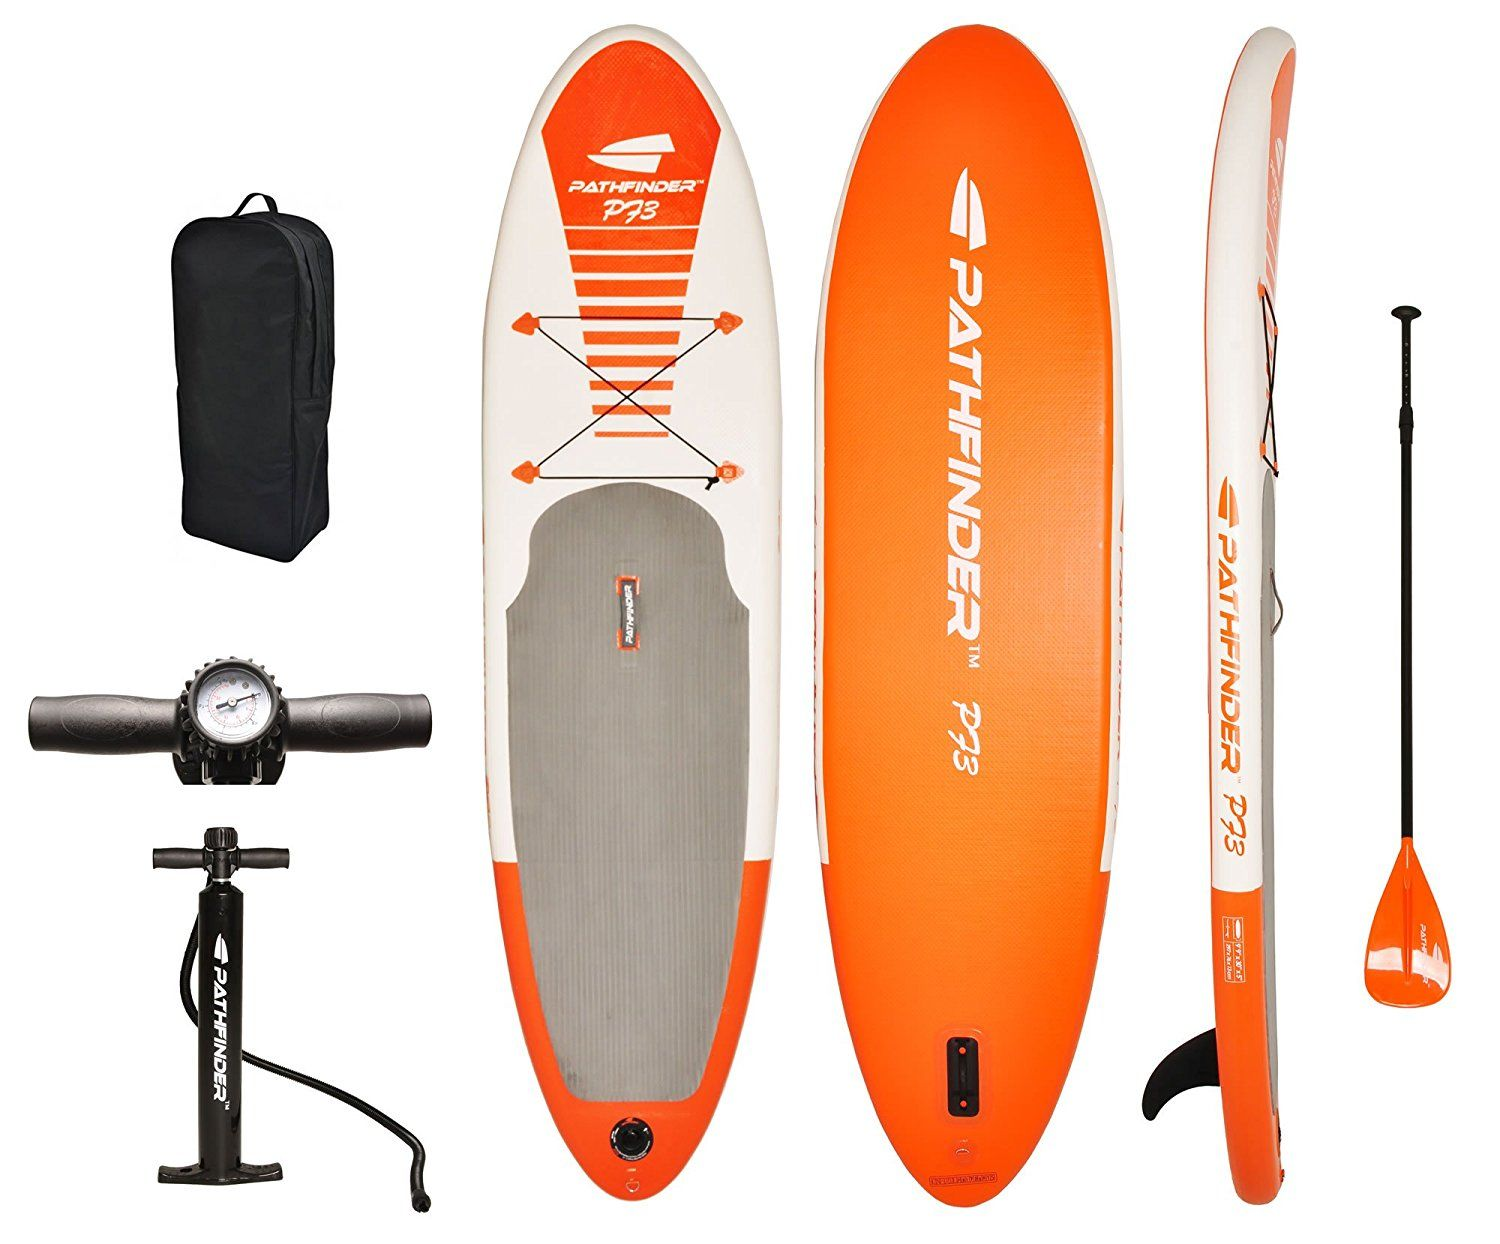 ee0927ba96 Find the Best Kids Paddle Board 2019 - Explore Sup